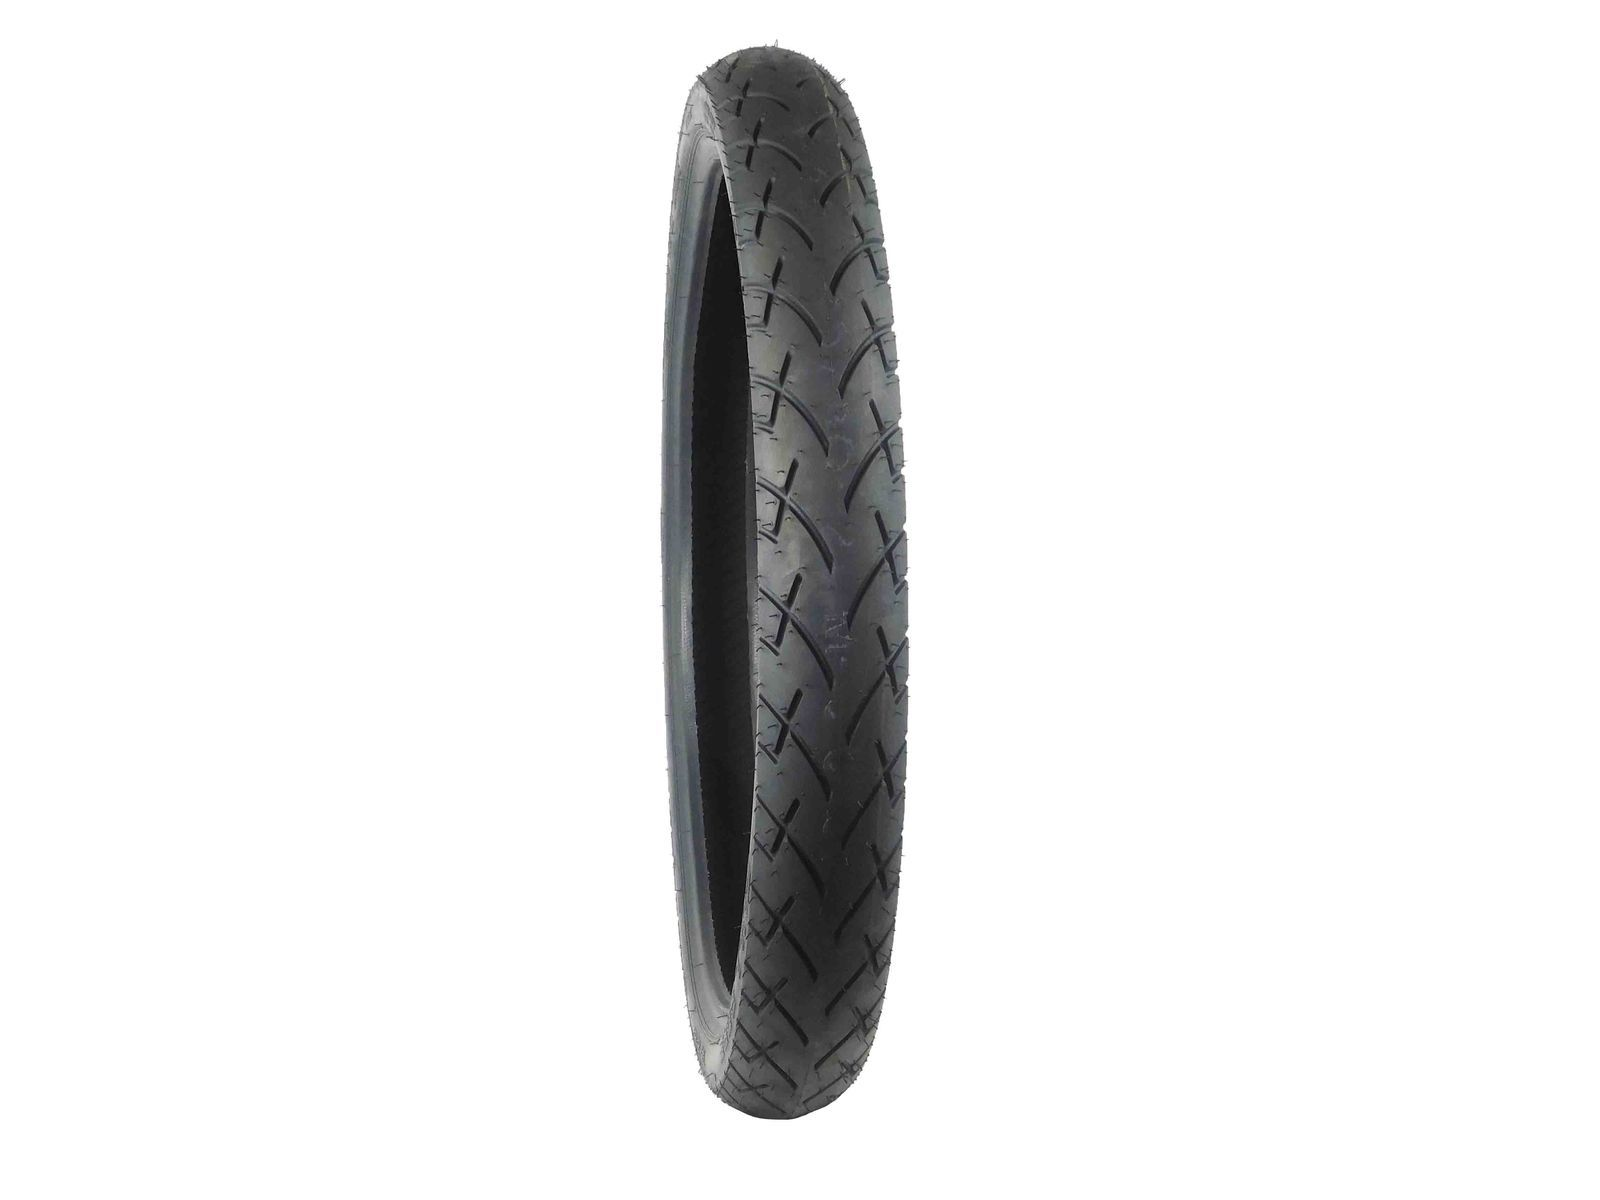 Full-Bore-80-90-21-Front-140-90-15-Rear-Set-Cruisers-Motorcycle-Tires-image-2